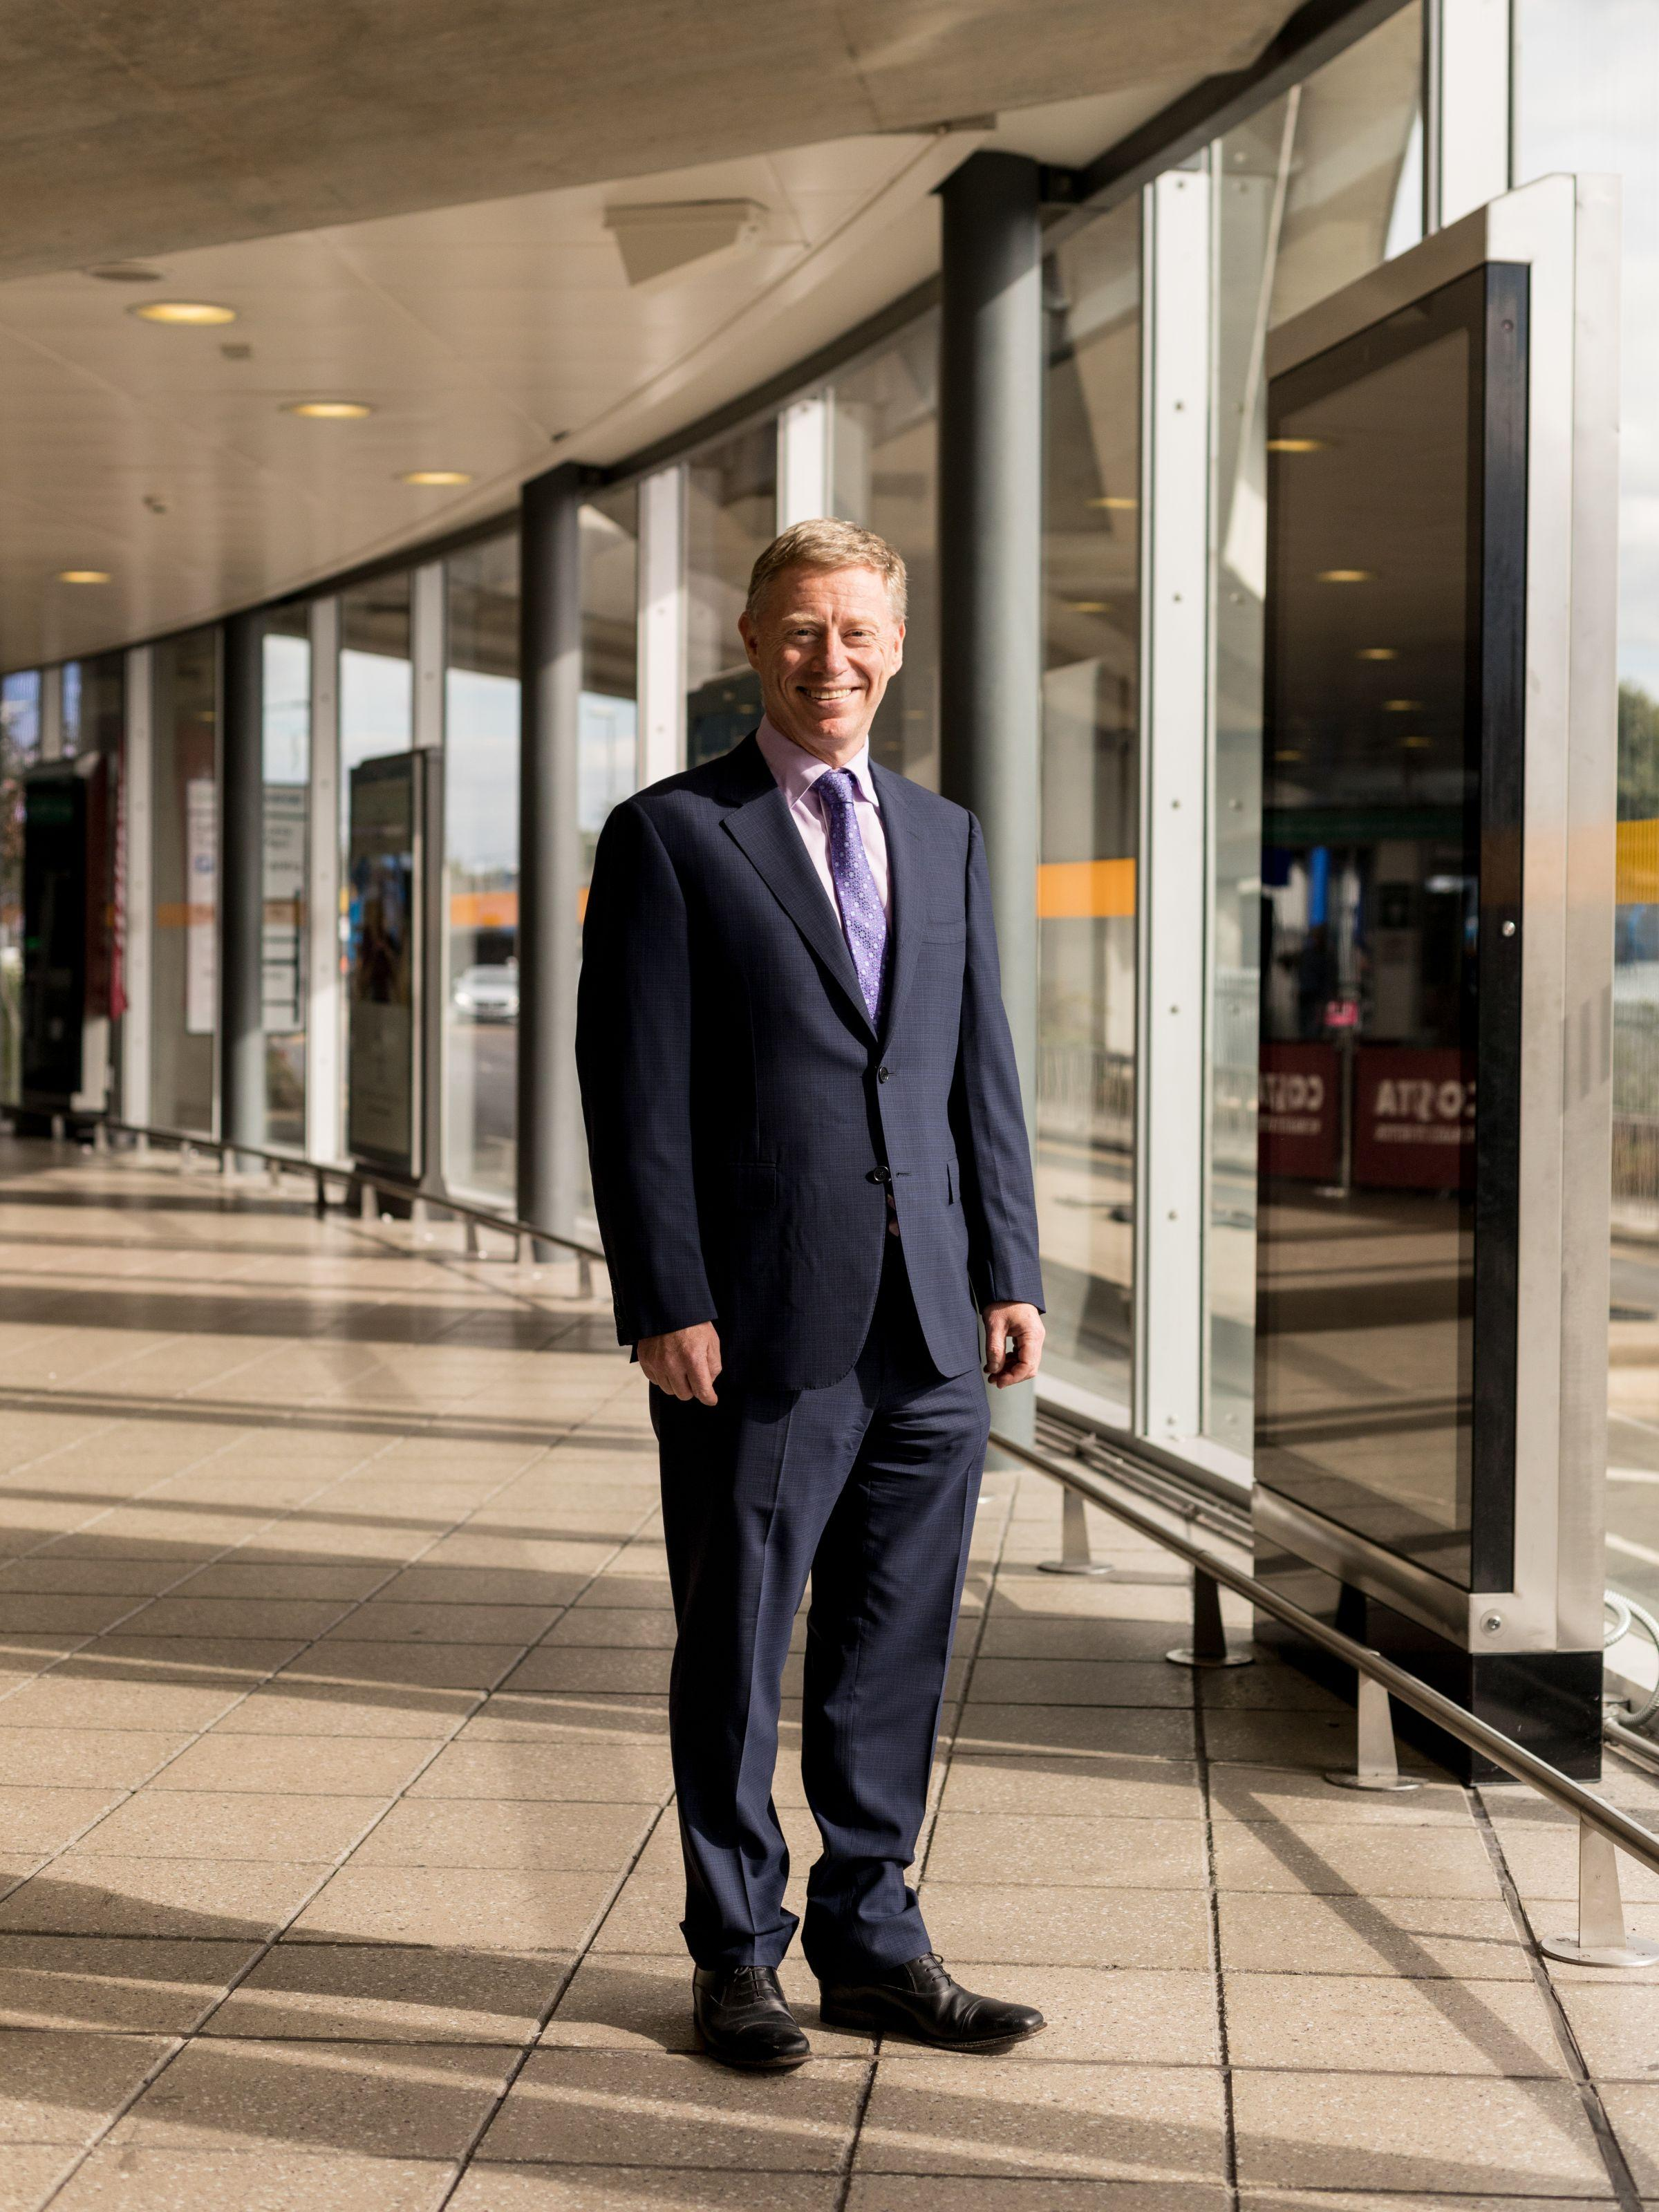 Robert Sinclair - CEO of London City Airport